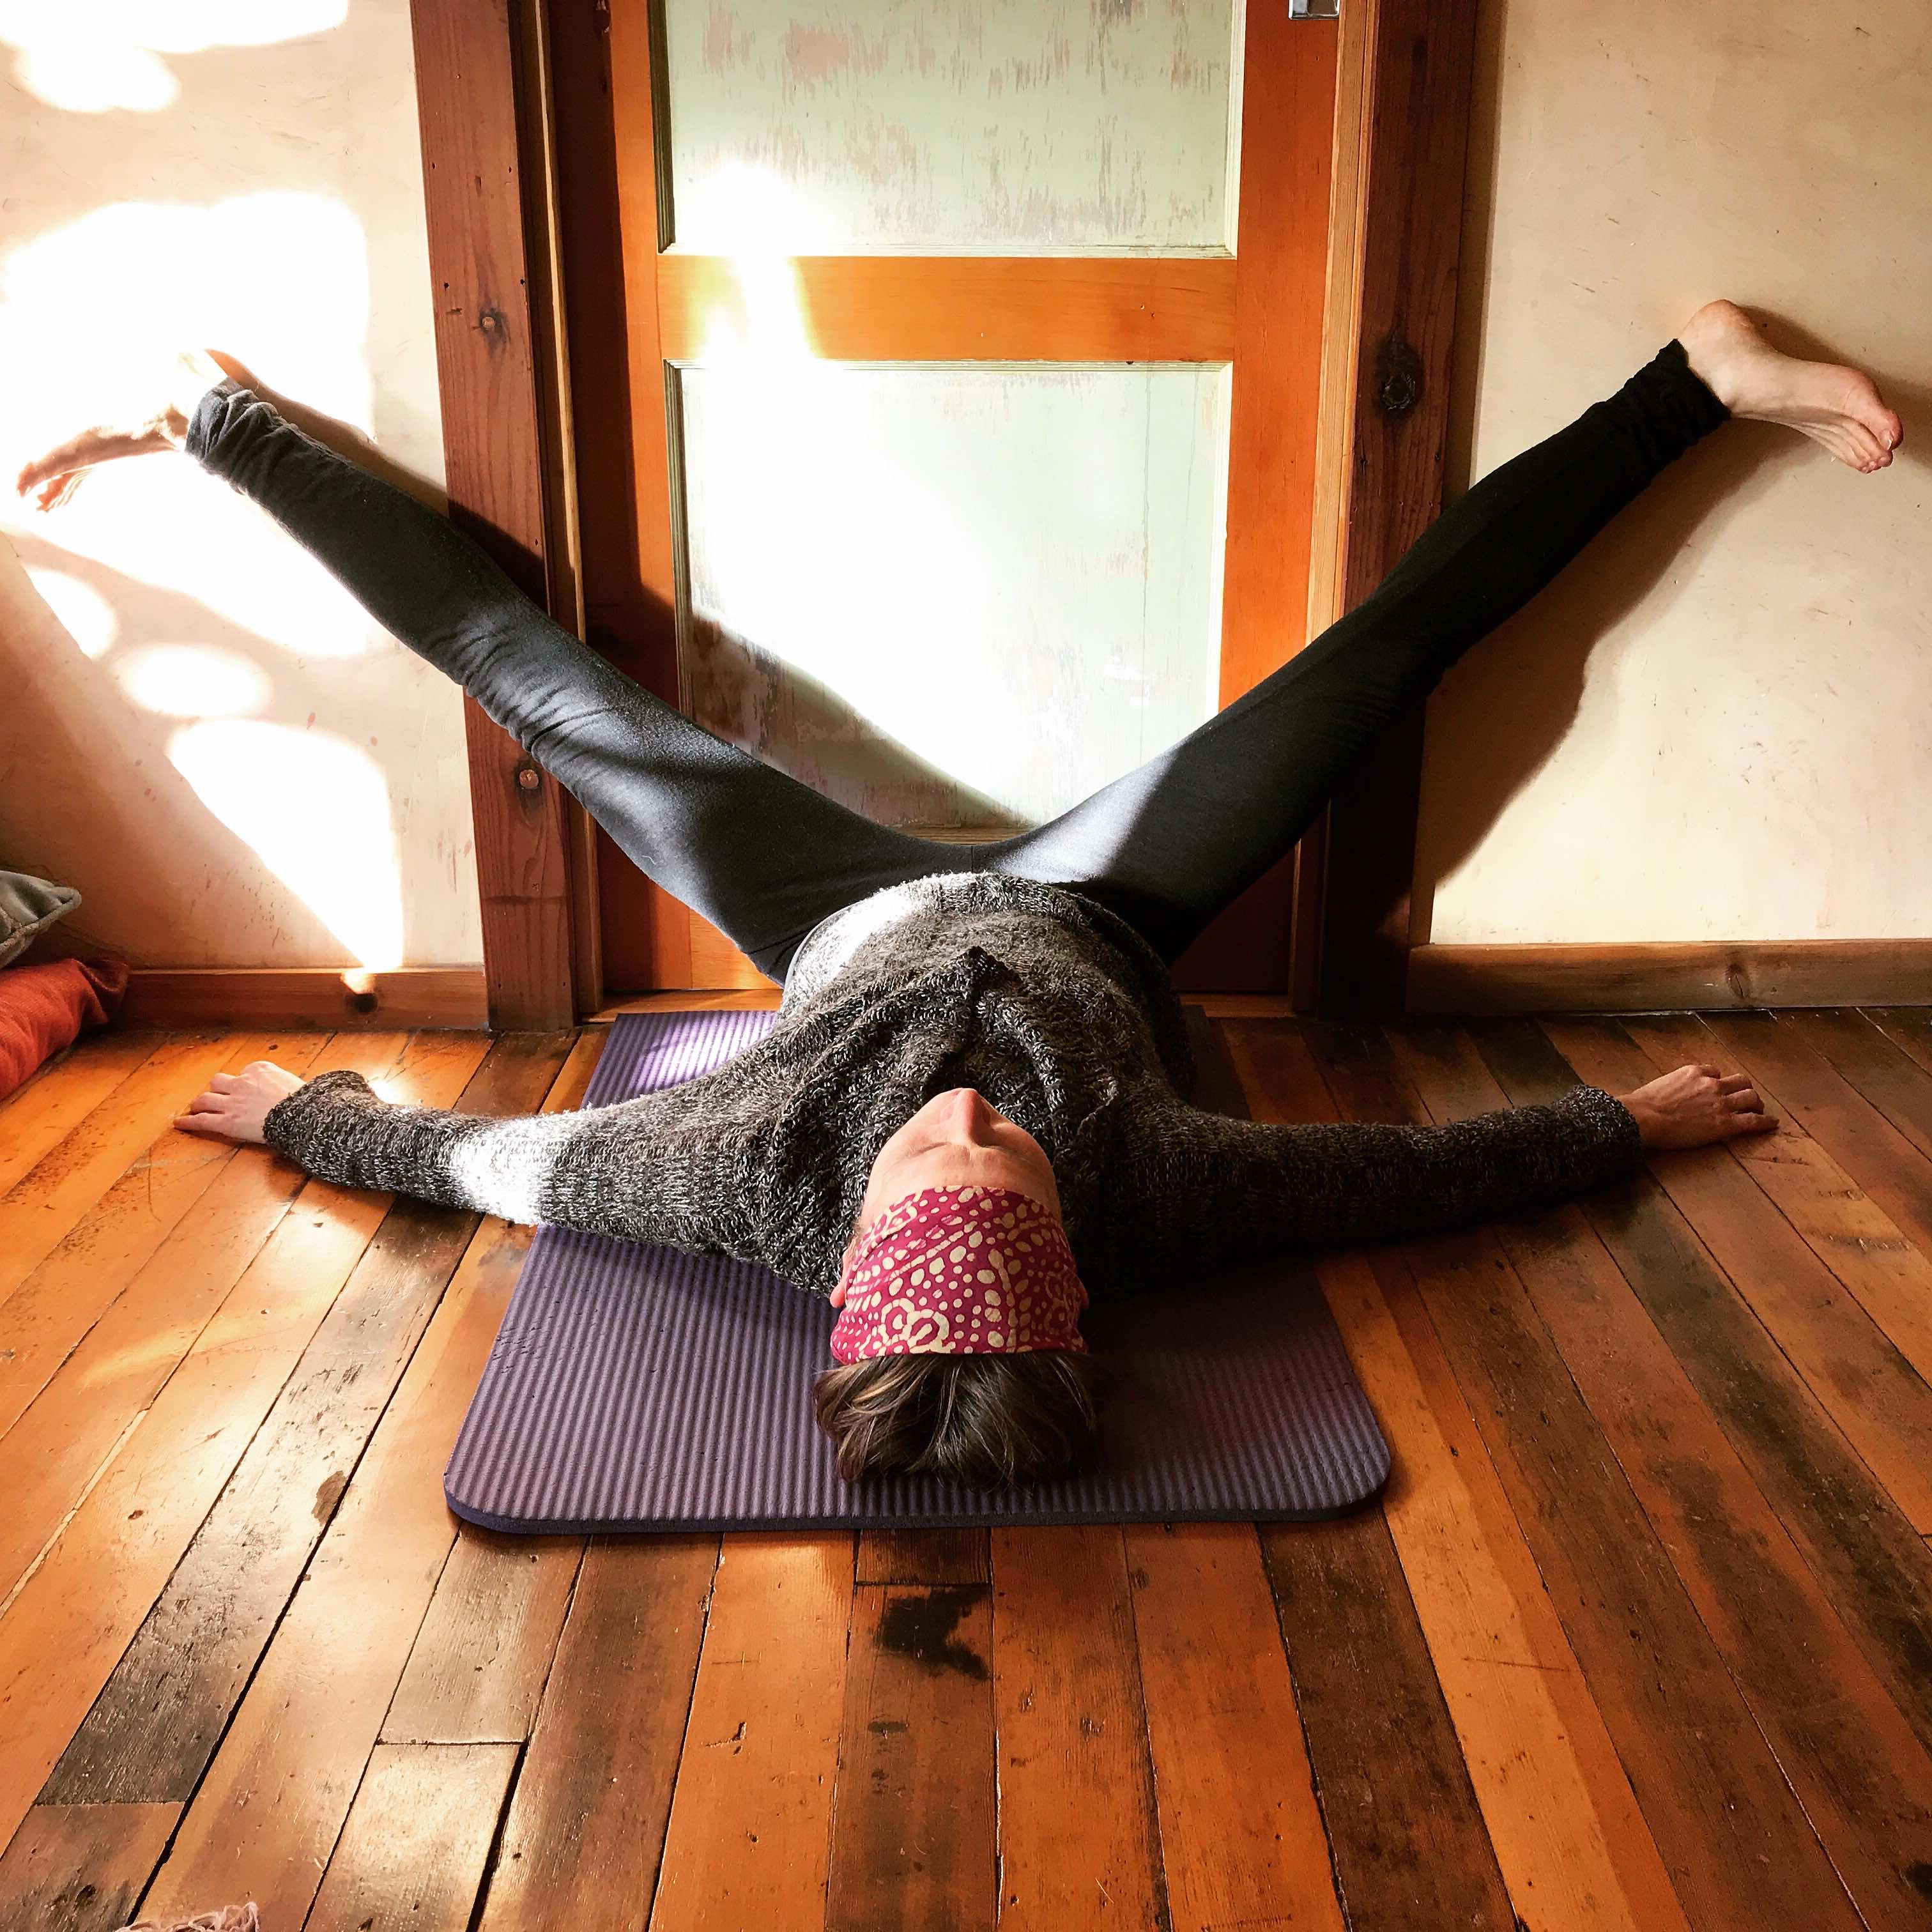 furniture free style at home body movement-friendly lifestyle wellness